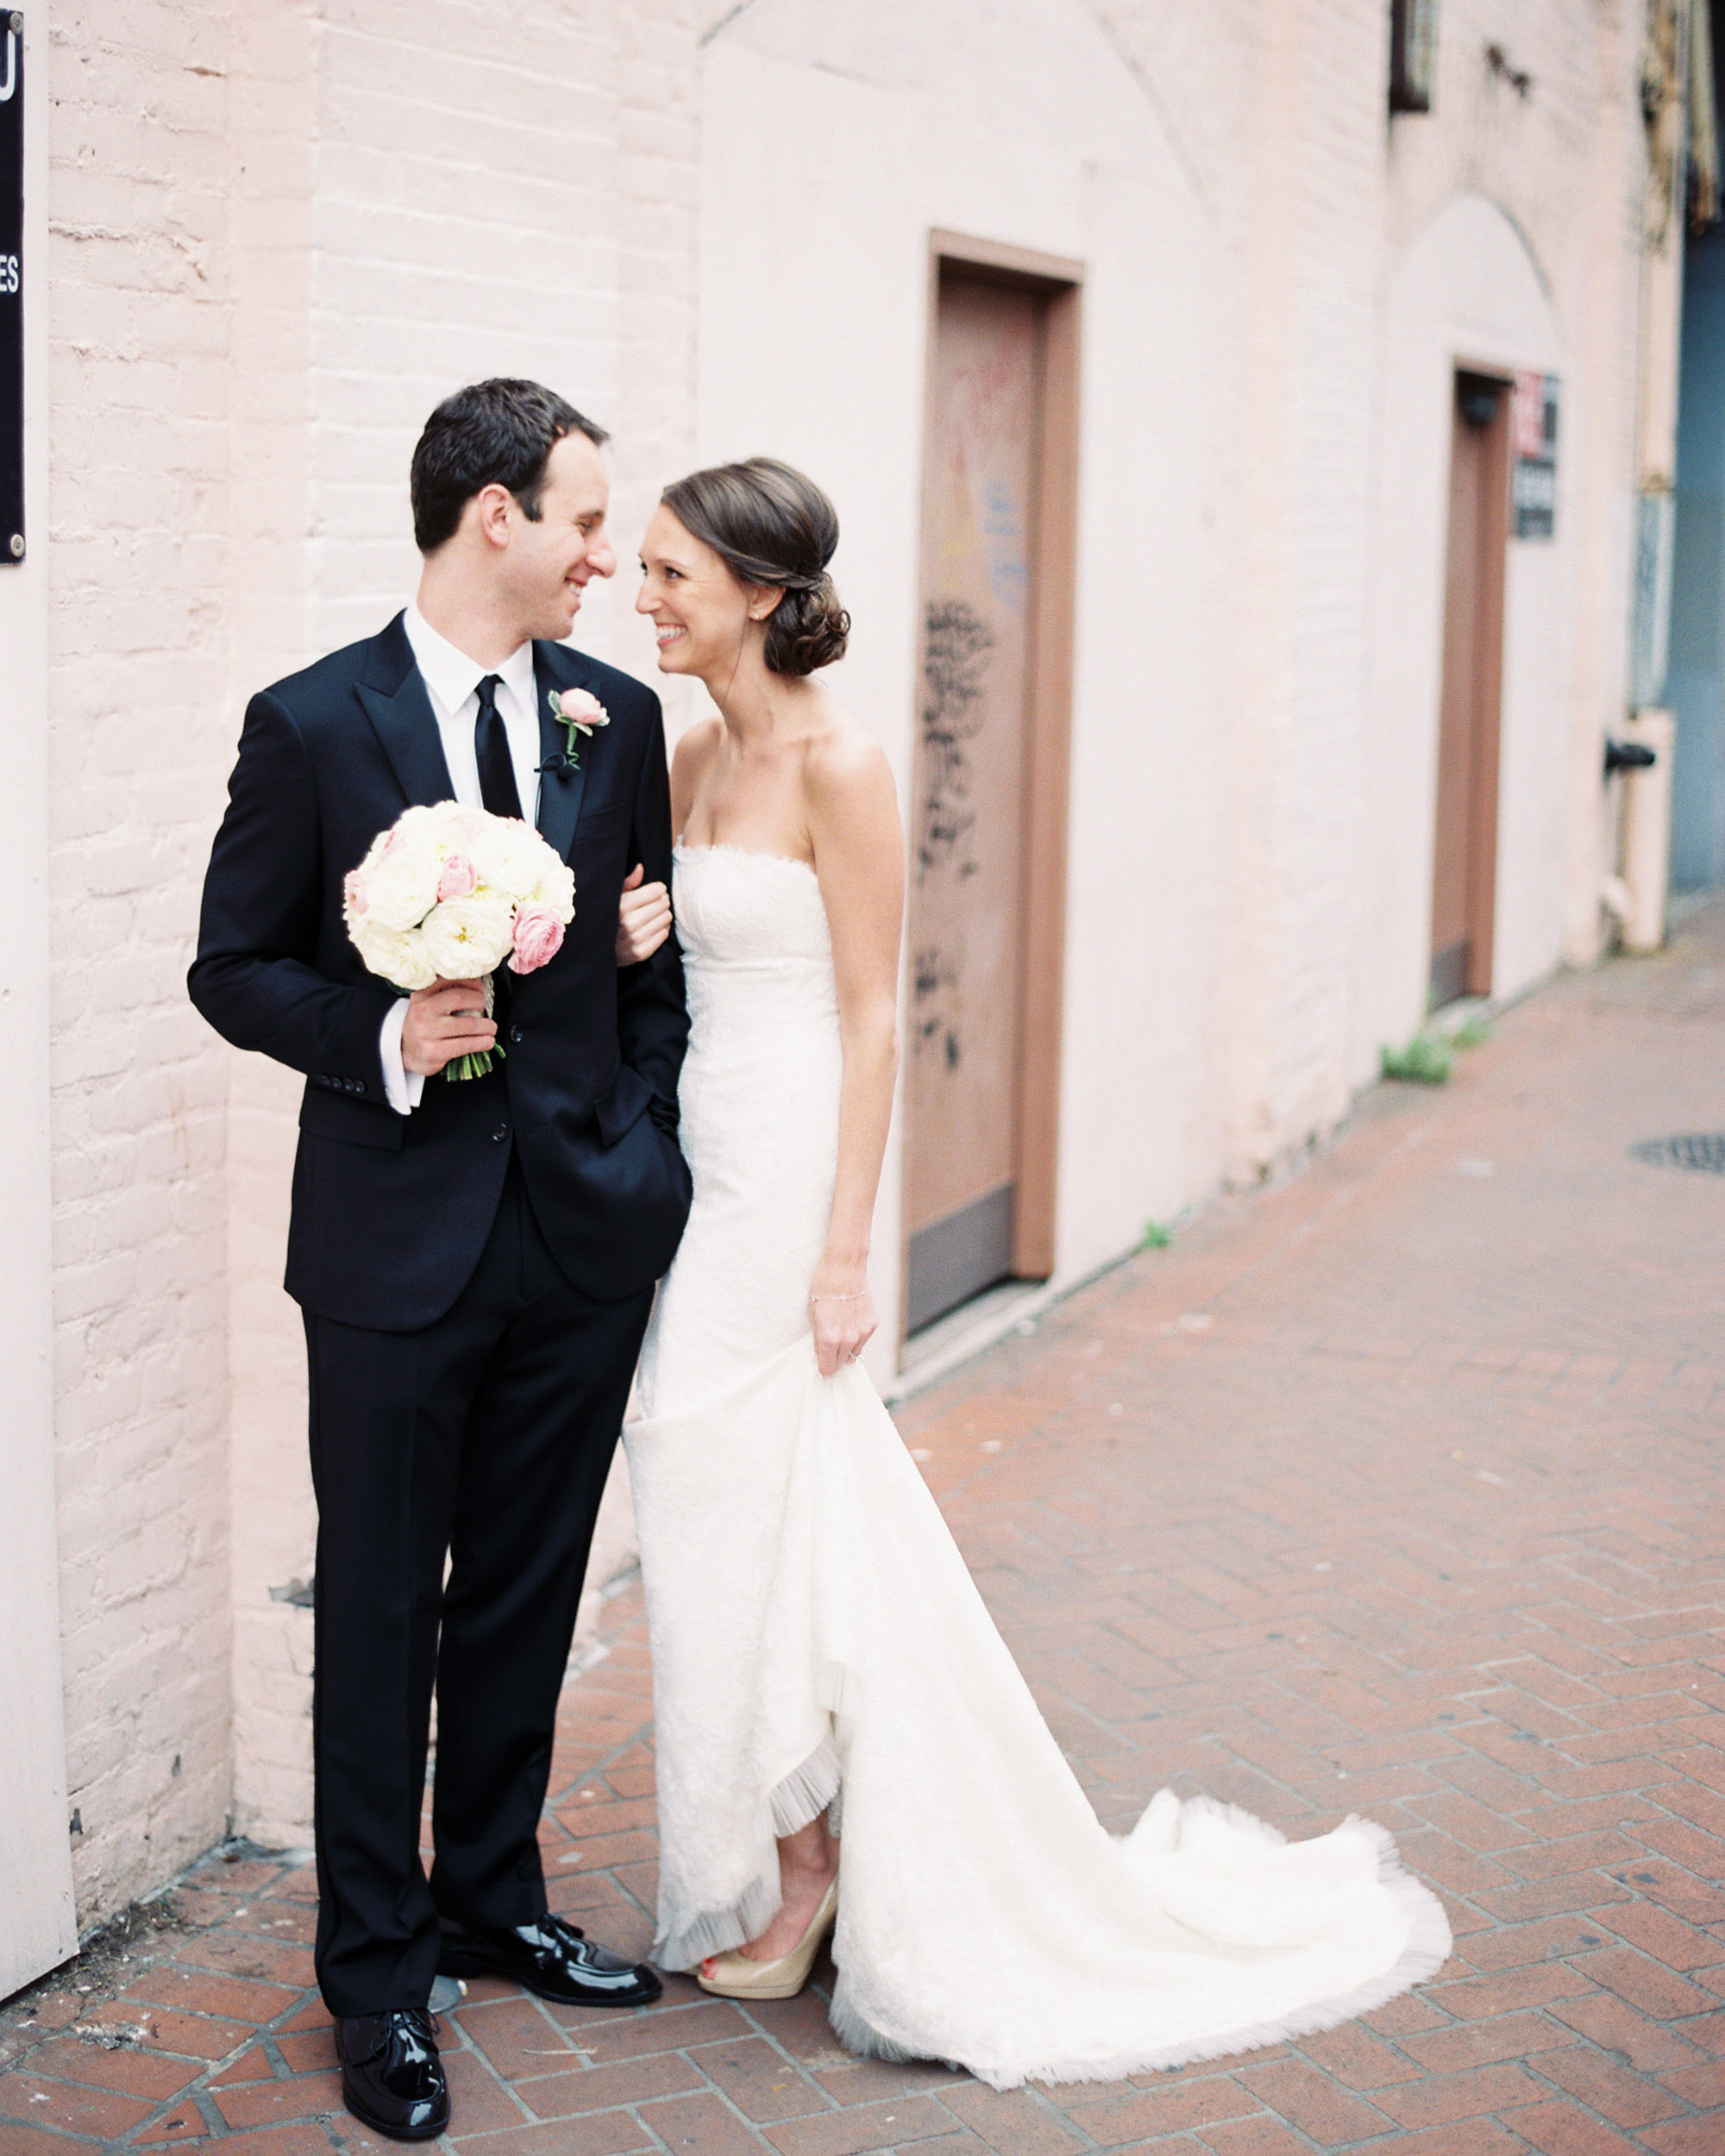 New Orleans Wedding Photographer 0010 - New Orleans